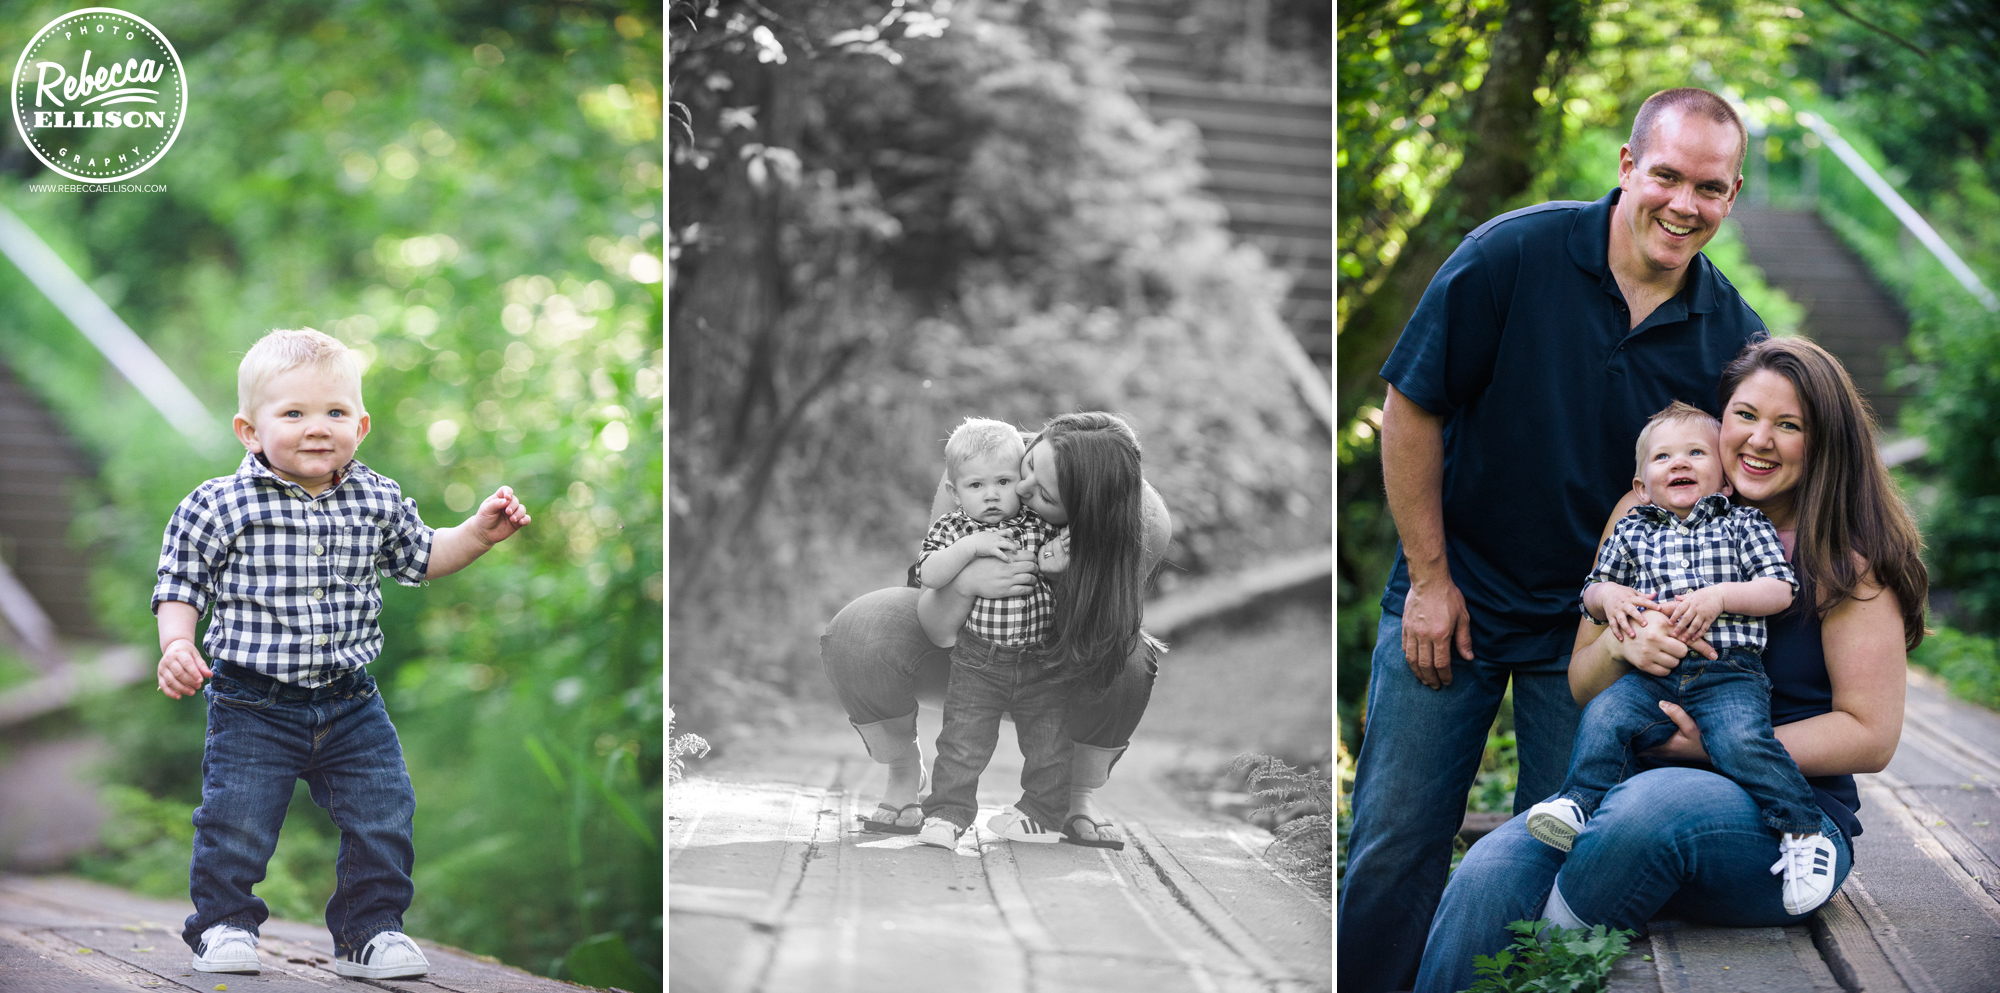 Outdoor family portraits at Howarth Park photographed by Family Photographer Rebecca Ellison